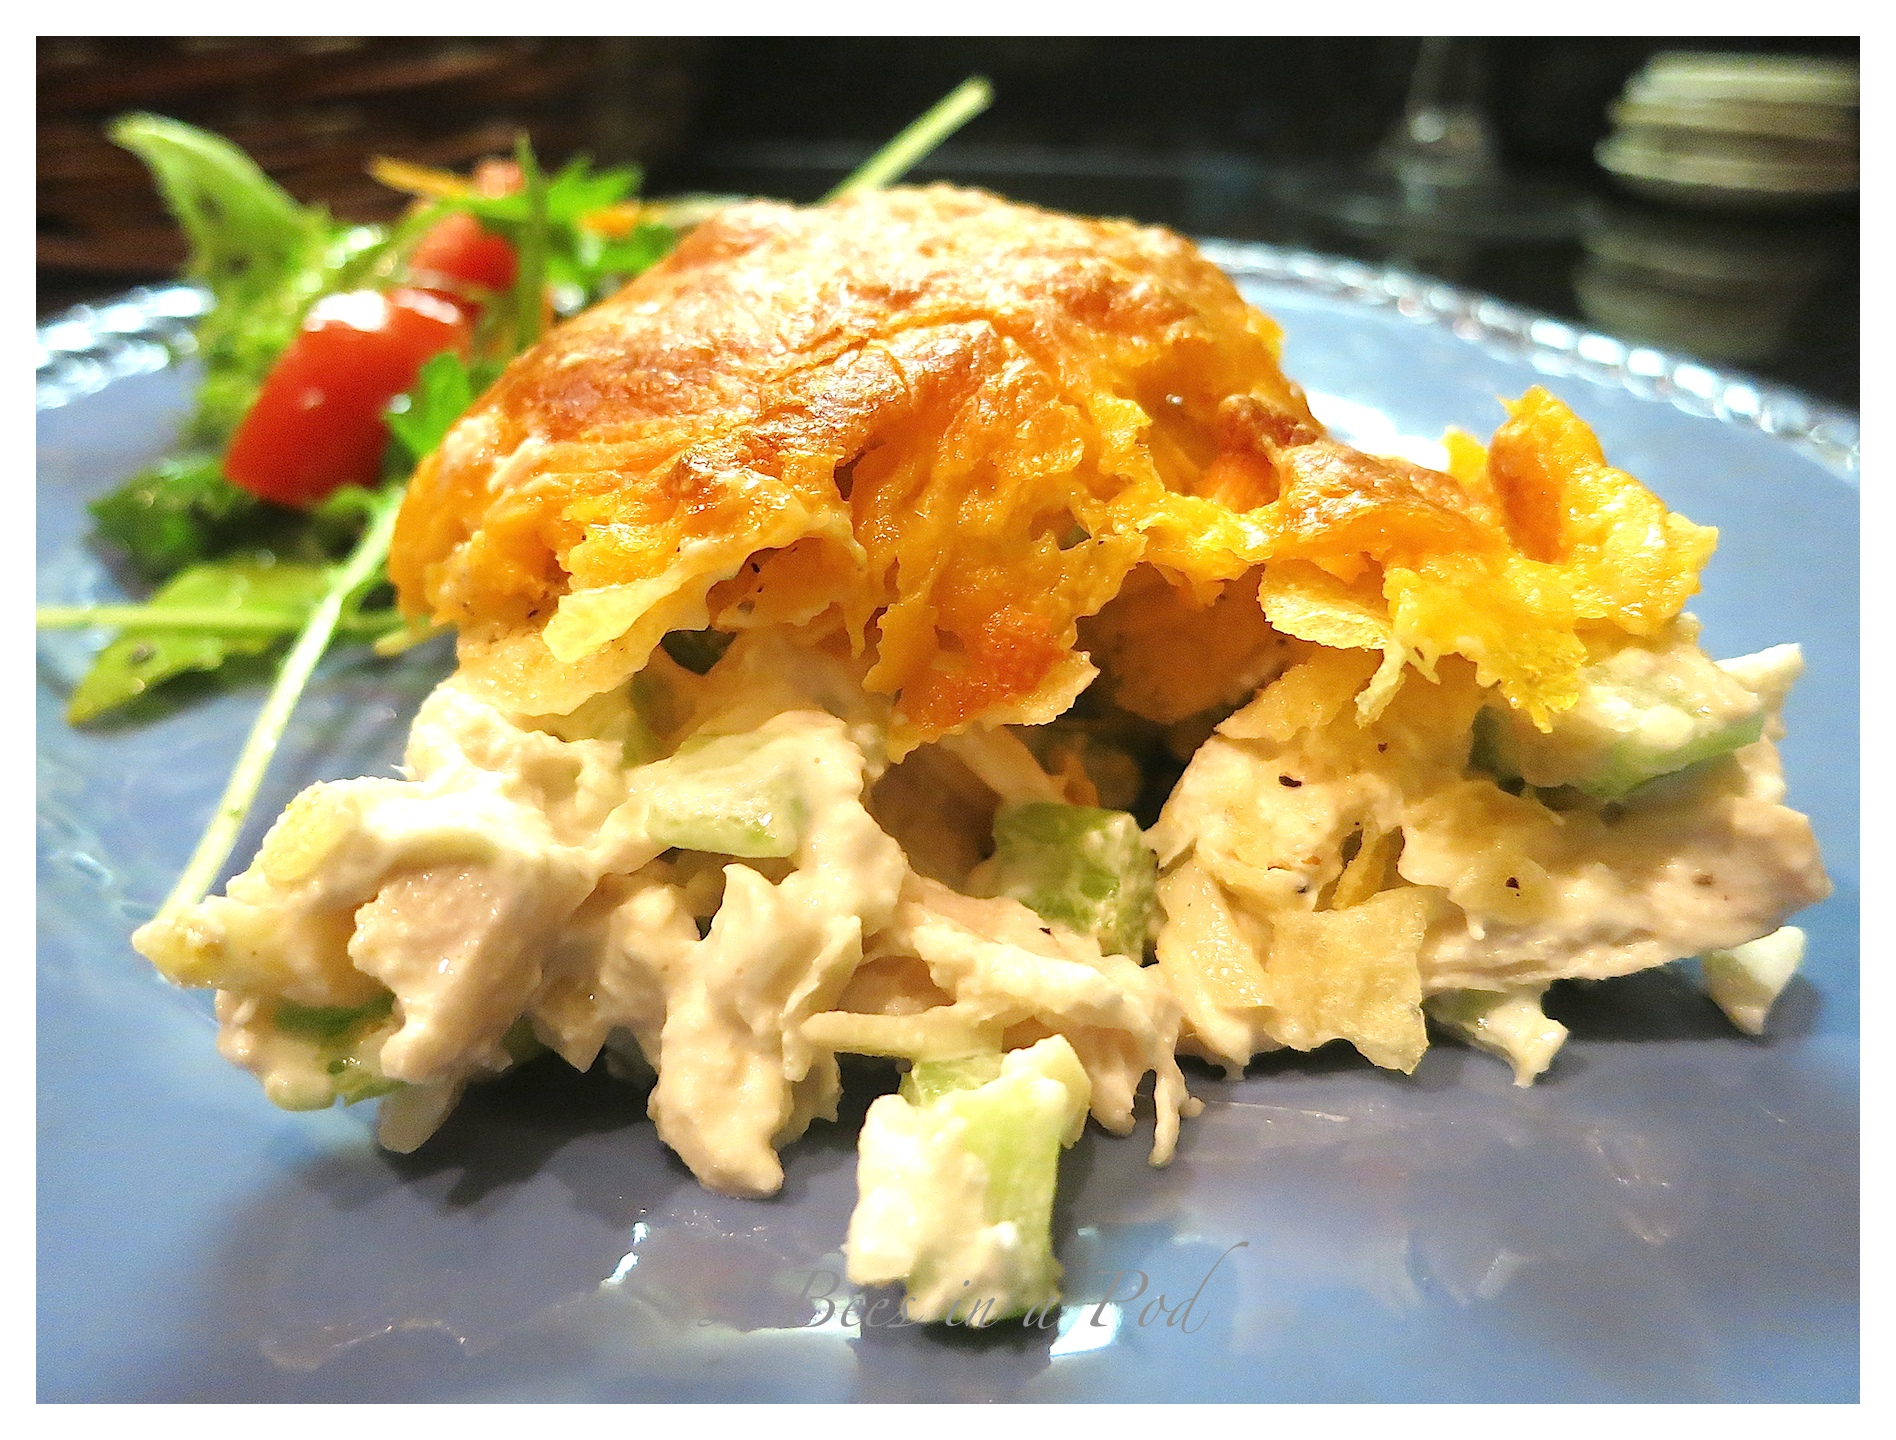 Scrumptious Baked Chicken Salad. Great crunch with added chips, celery and almonds.